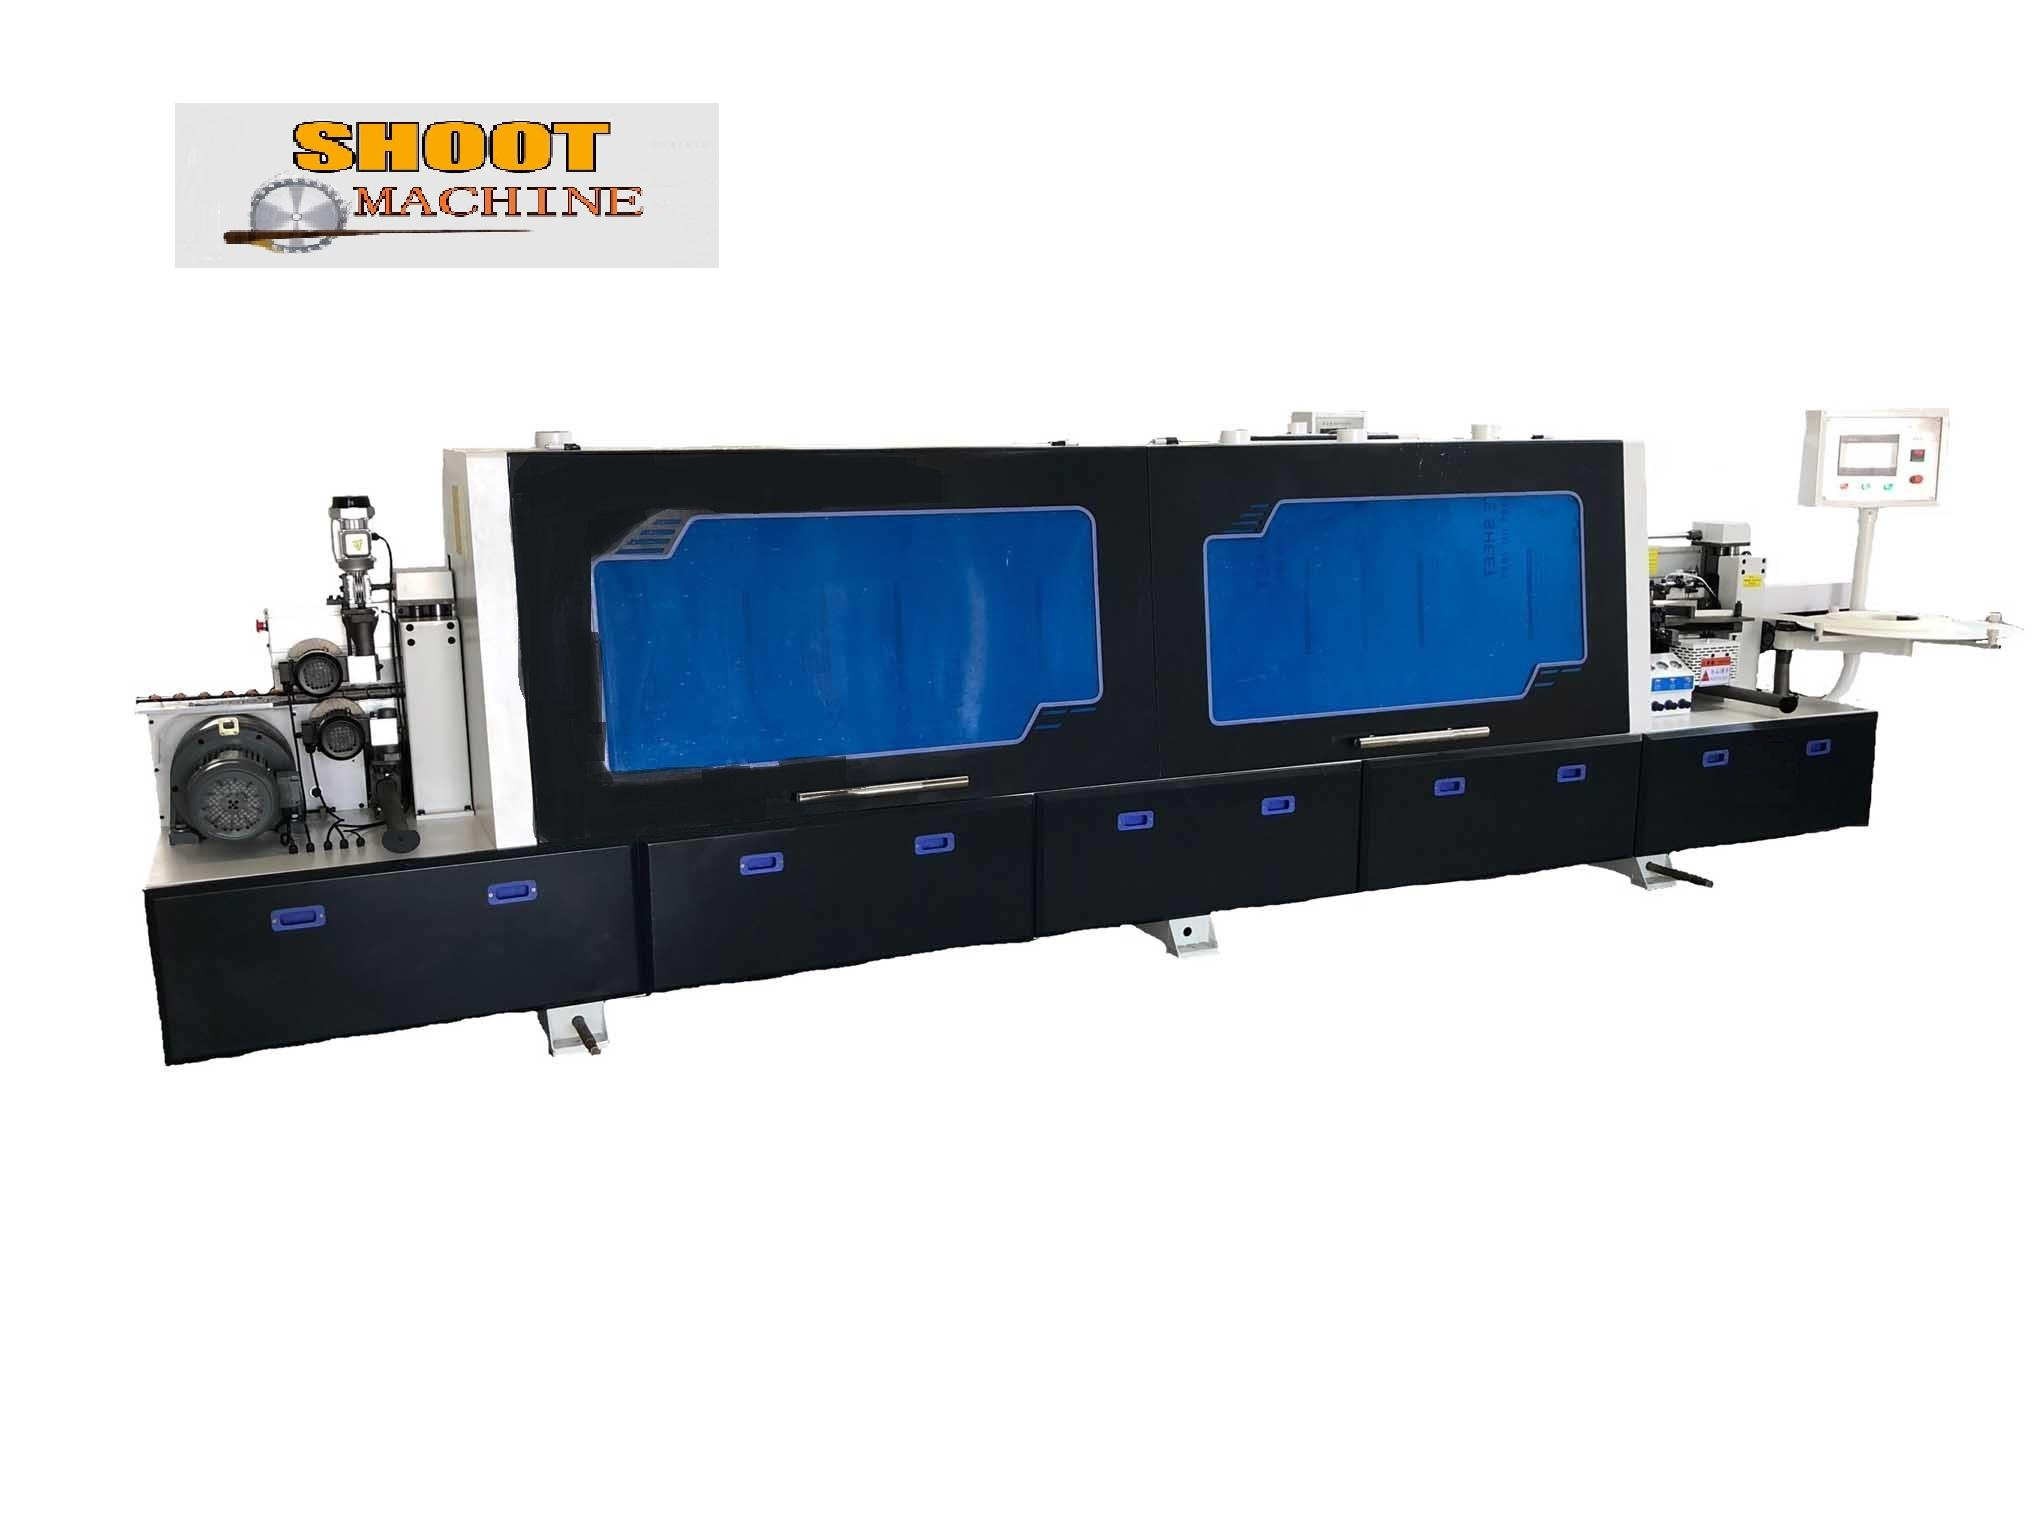 Woodworking Auto Edge Banding Machine with corner and hogging functions, SH450DK